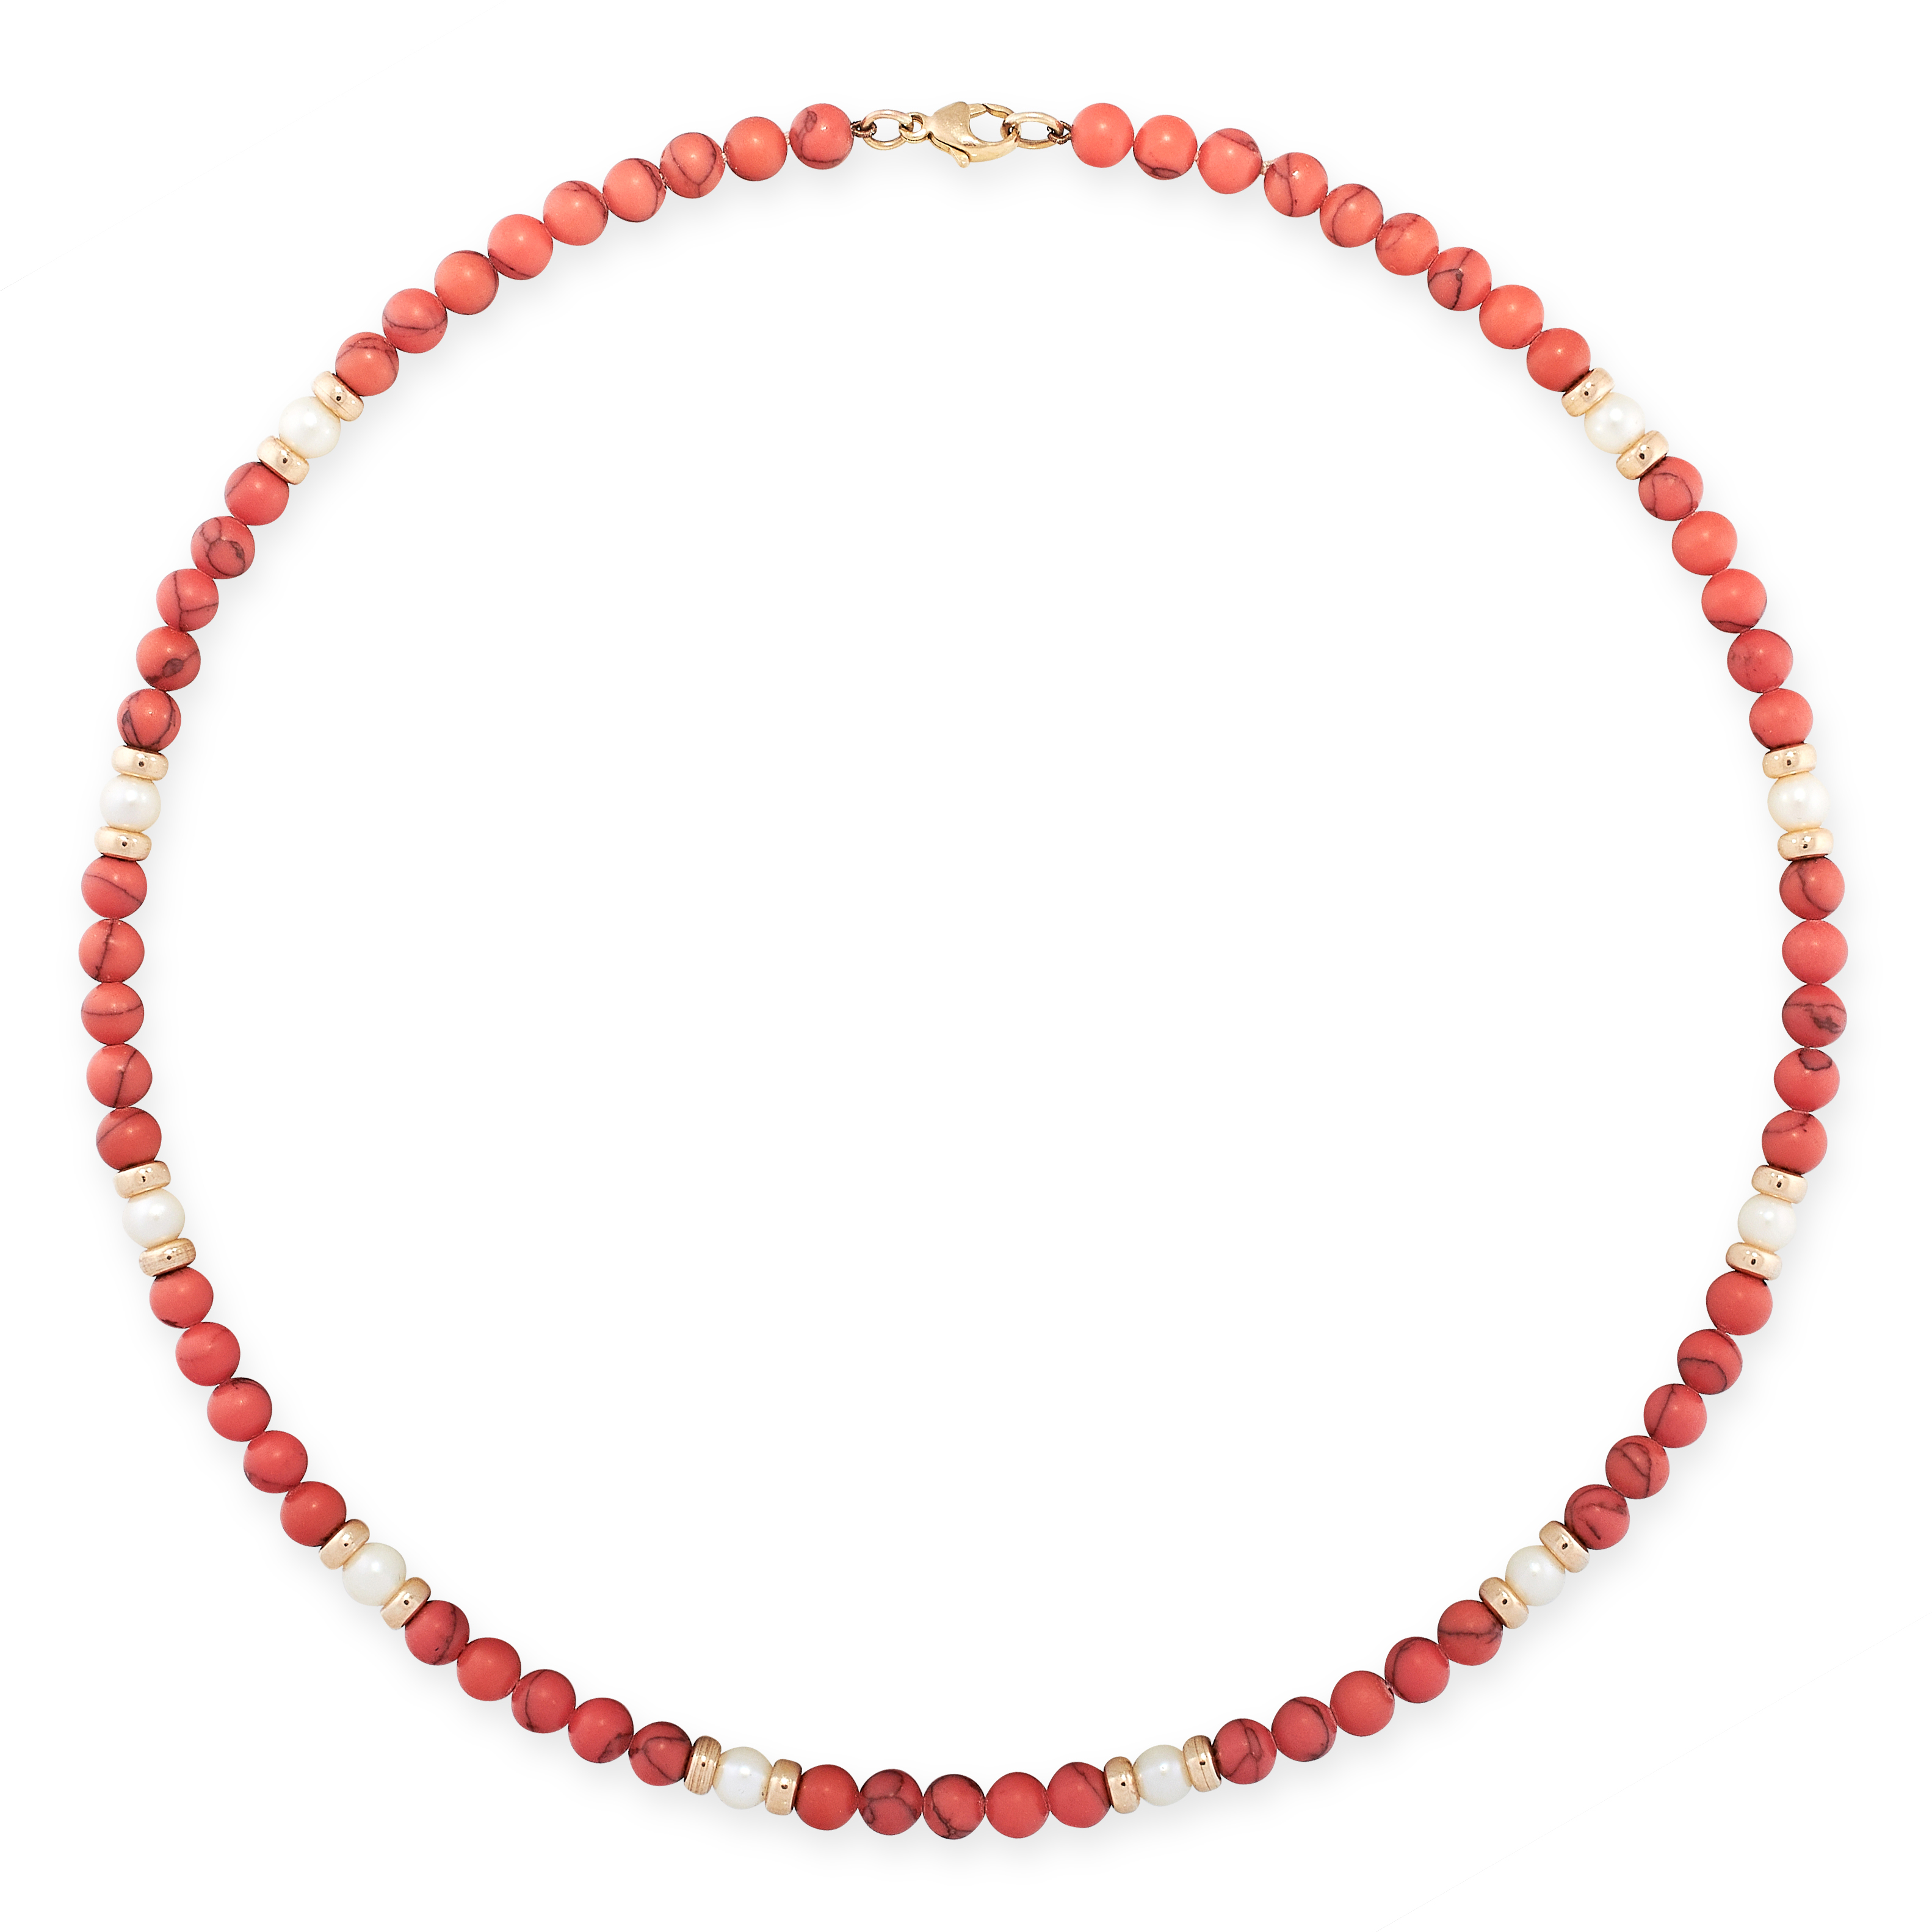 A PEARL AND DYED HOWLITE BEAD NECKLACE comprising of a single row of dyed howlite beads, accented by